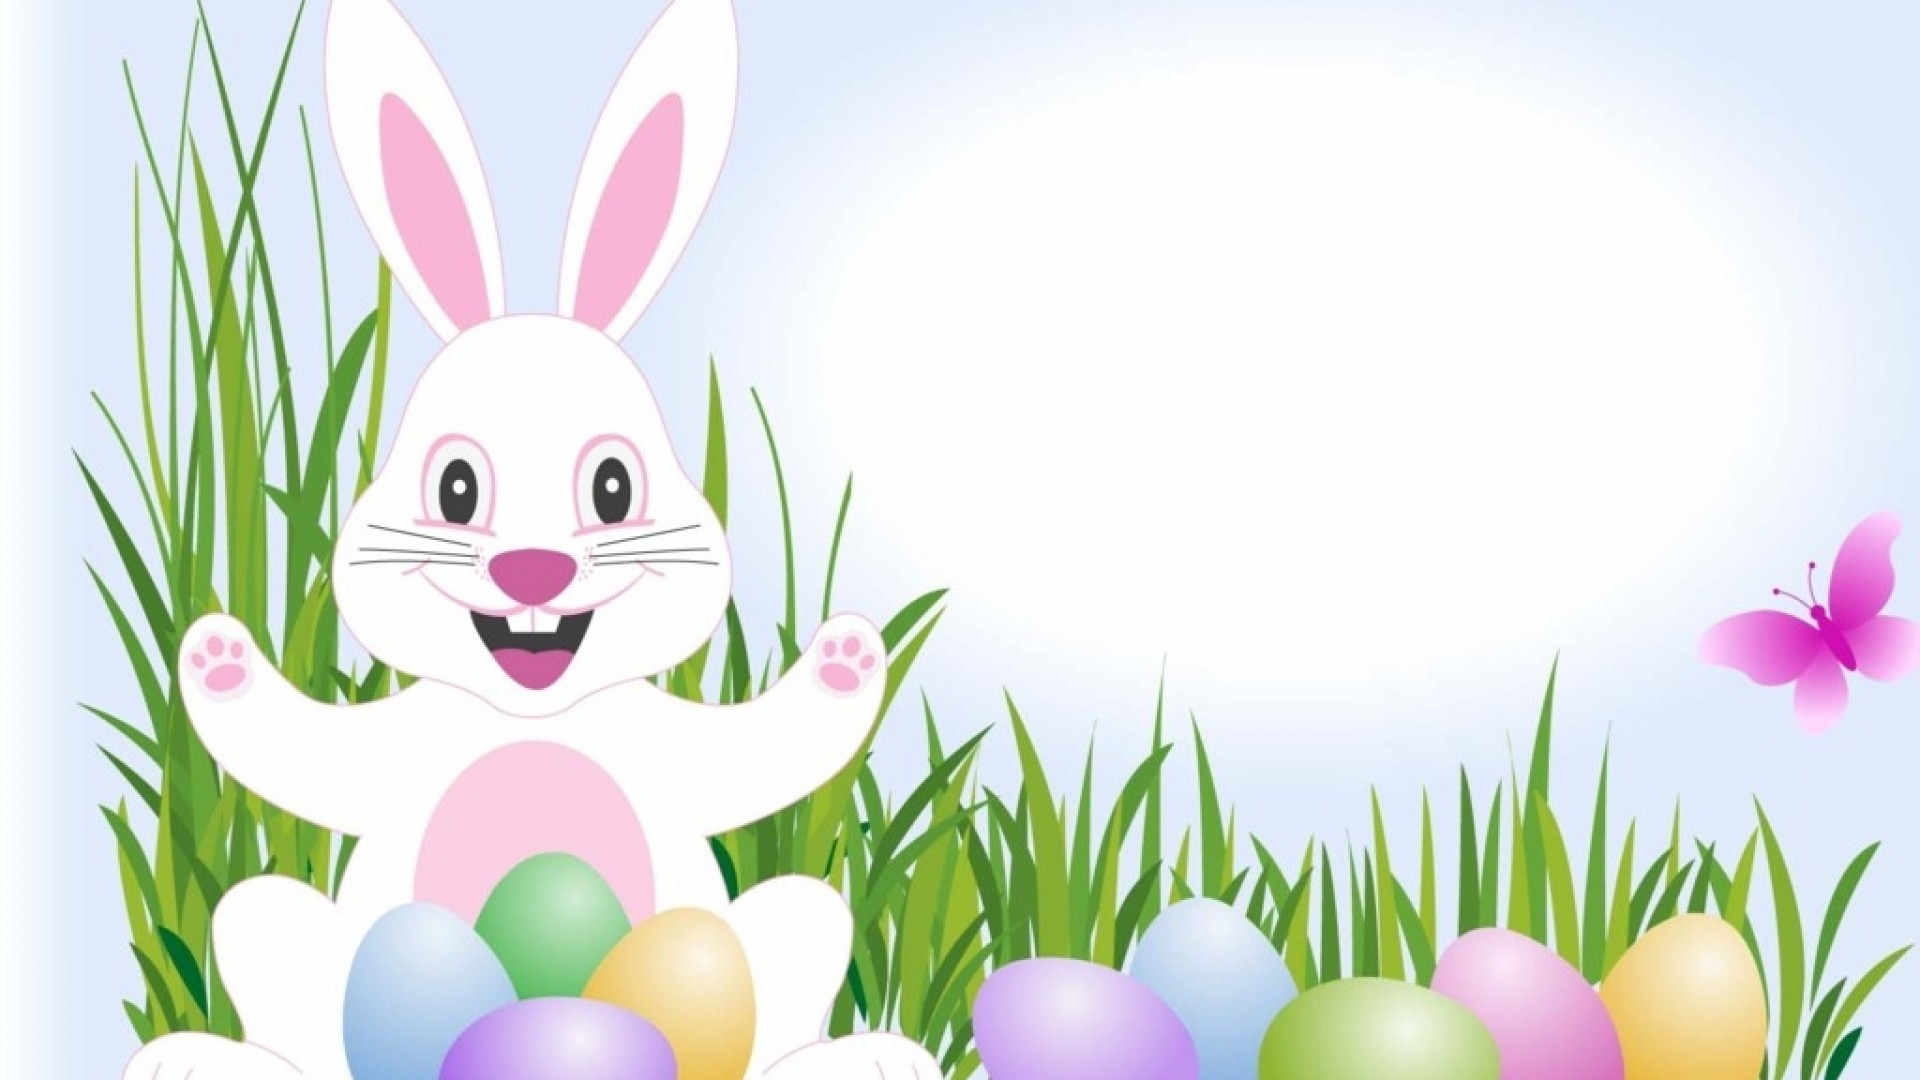 Easter Bunny 2018 Wallpapers   New HD Wallpapers 1920x1080